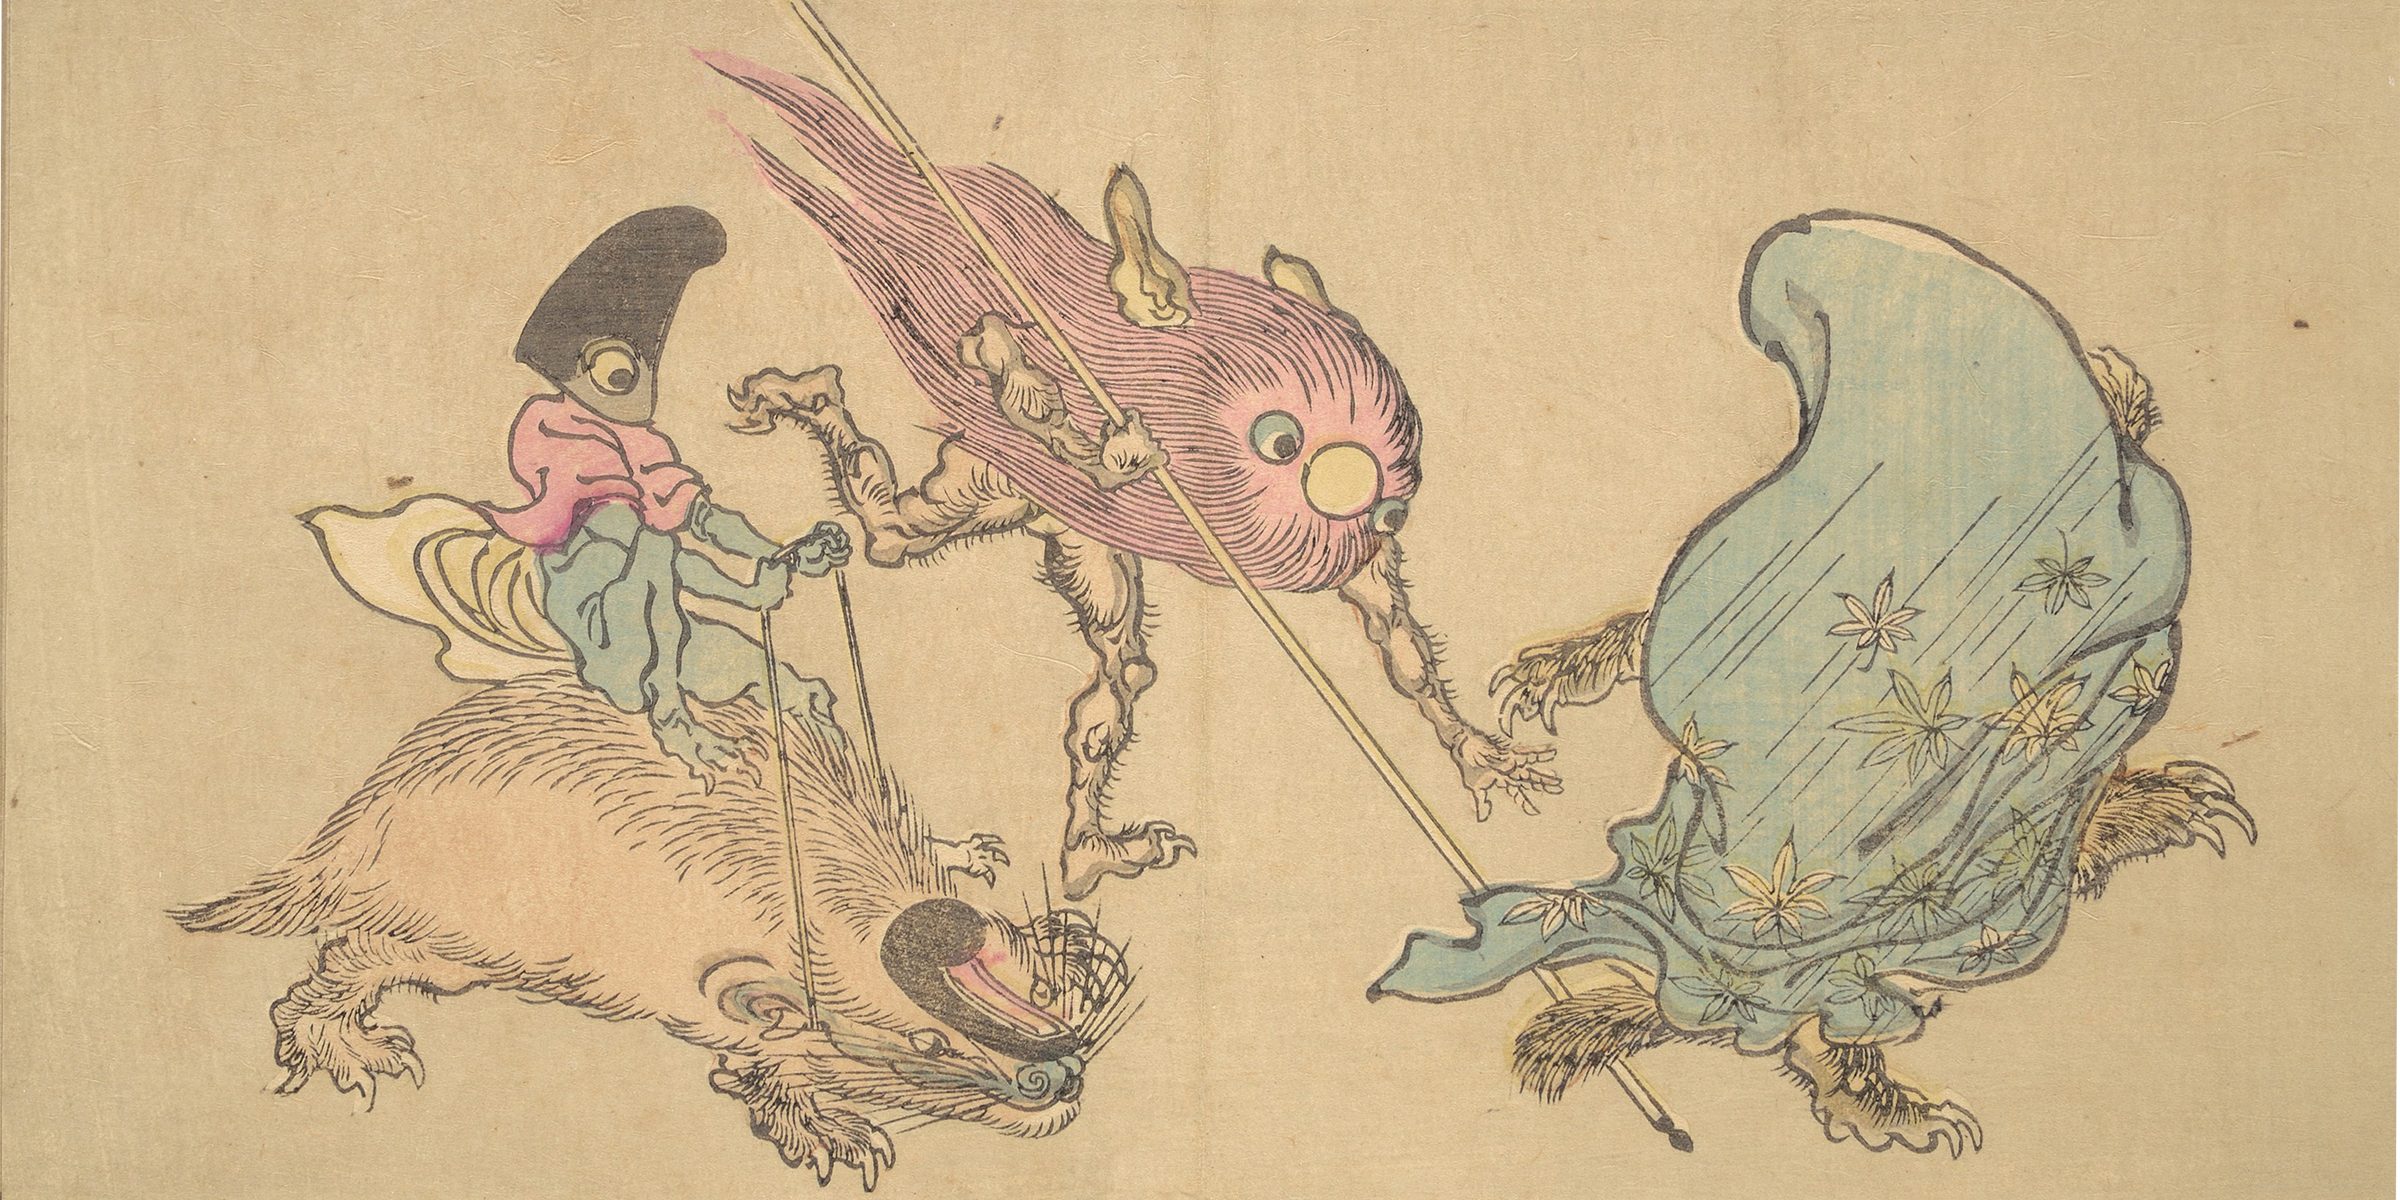 Illustration from an 1890 edition of Kyosai's Pictures of One Hundred Demons, by Kawanabe Kyosai. © The Metropolitan Museum of Art, Purchase, Mary and James G. Wallach Foundation Gift, 2013.